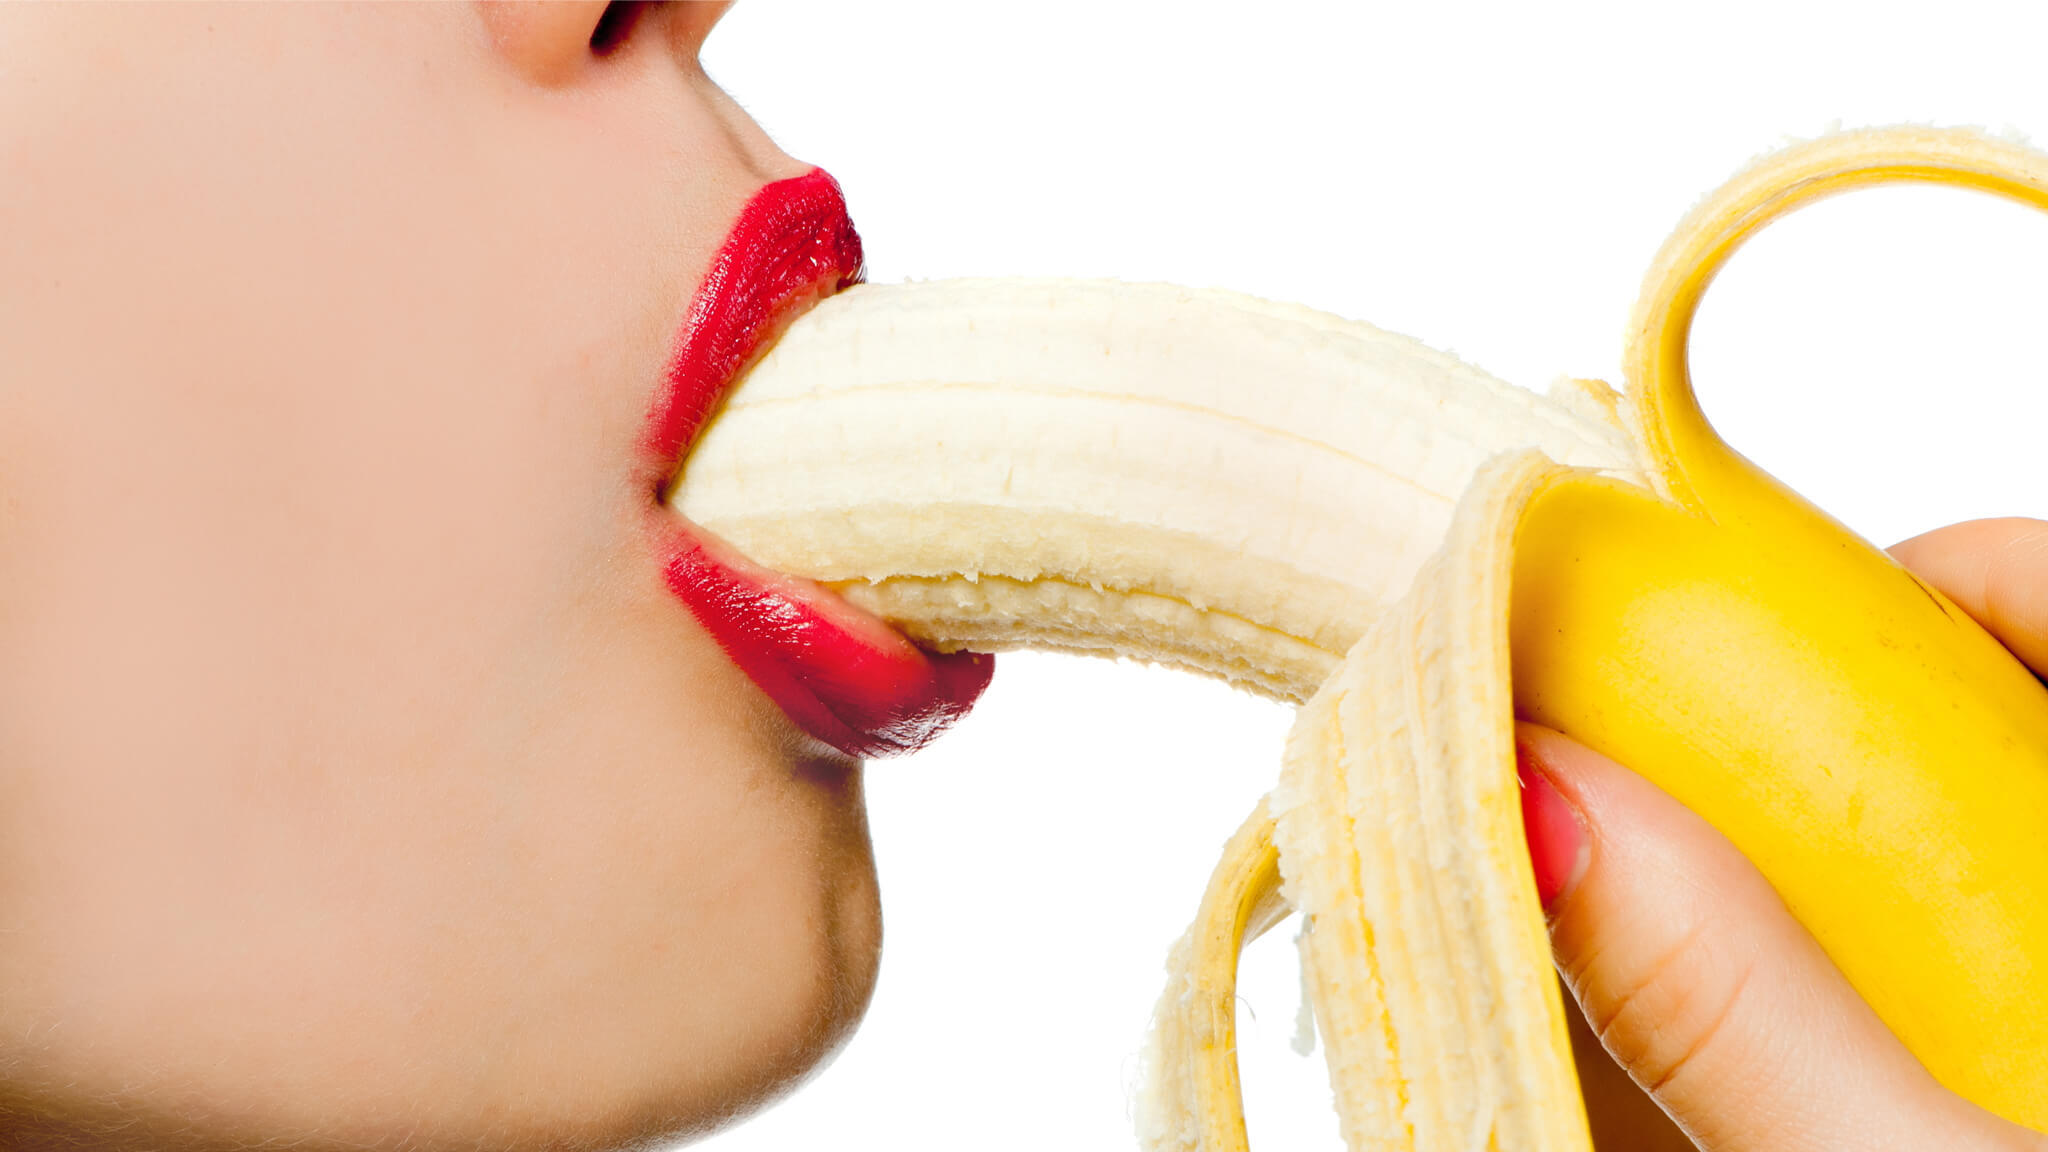 Woman Seductively Eating A Banana